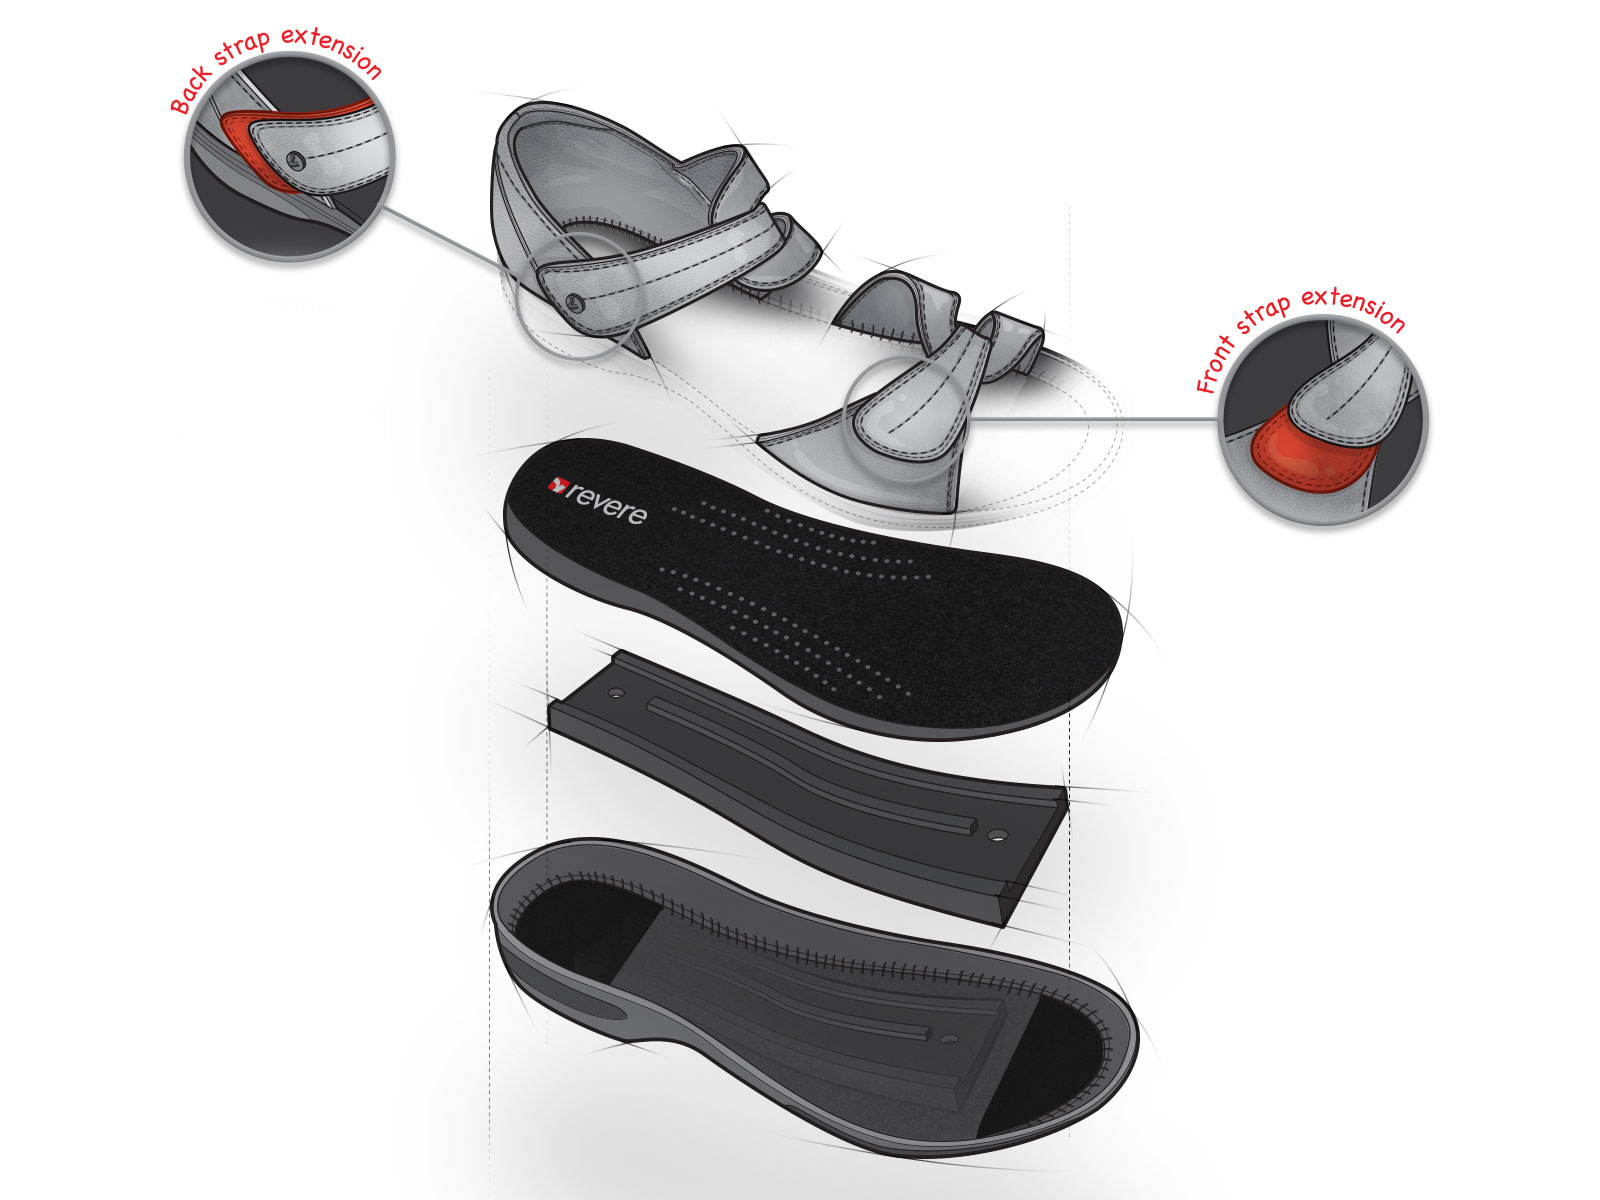 Elevated blowout technical illustration of medical footware